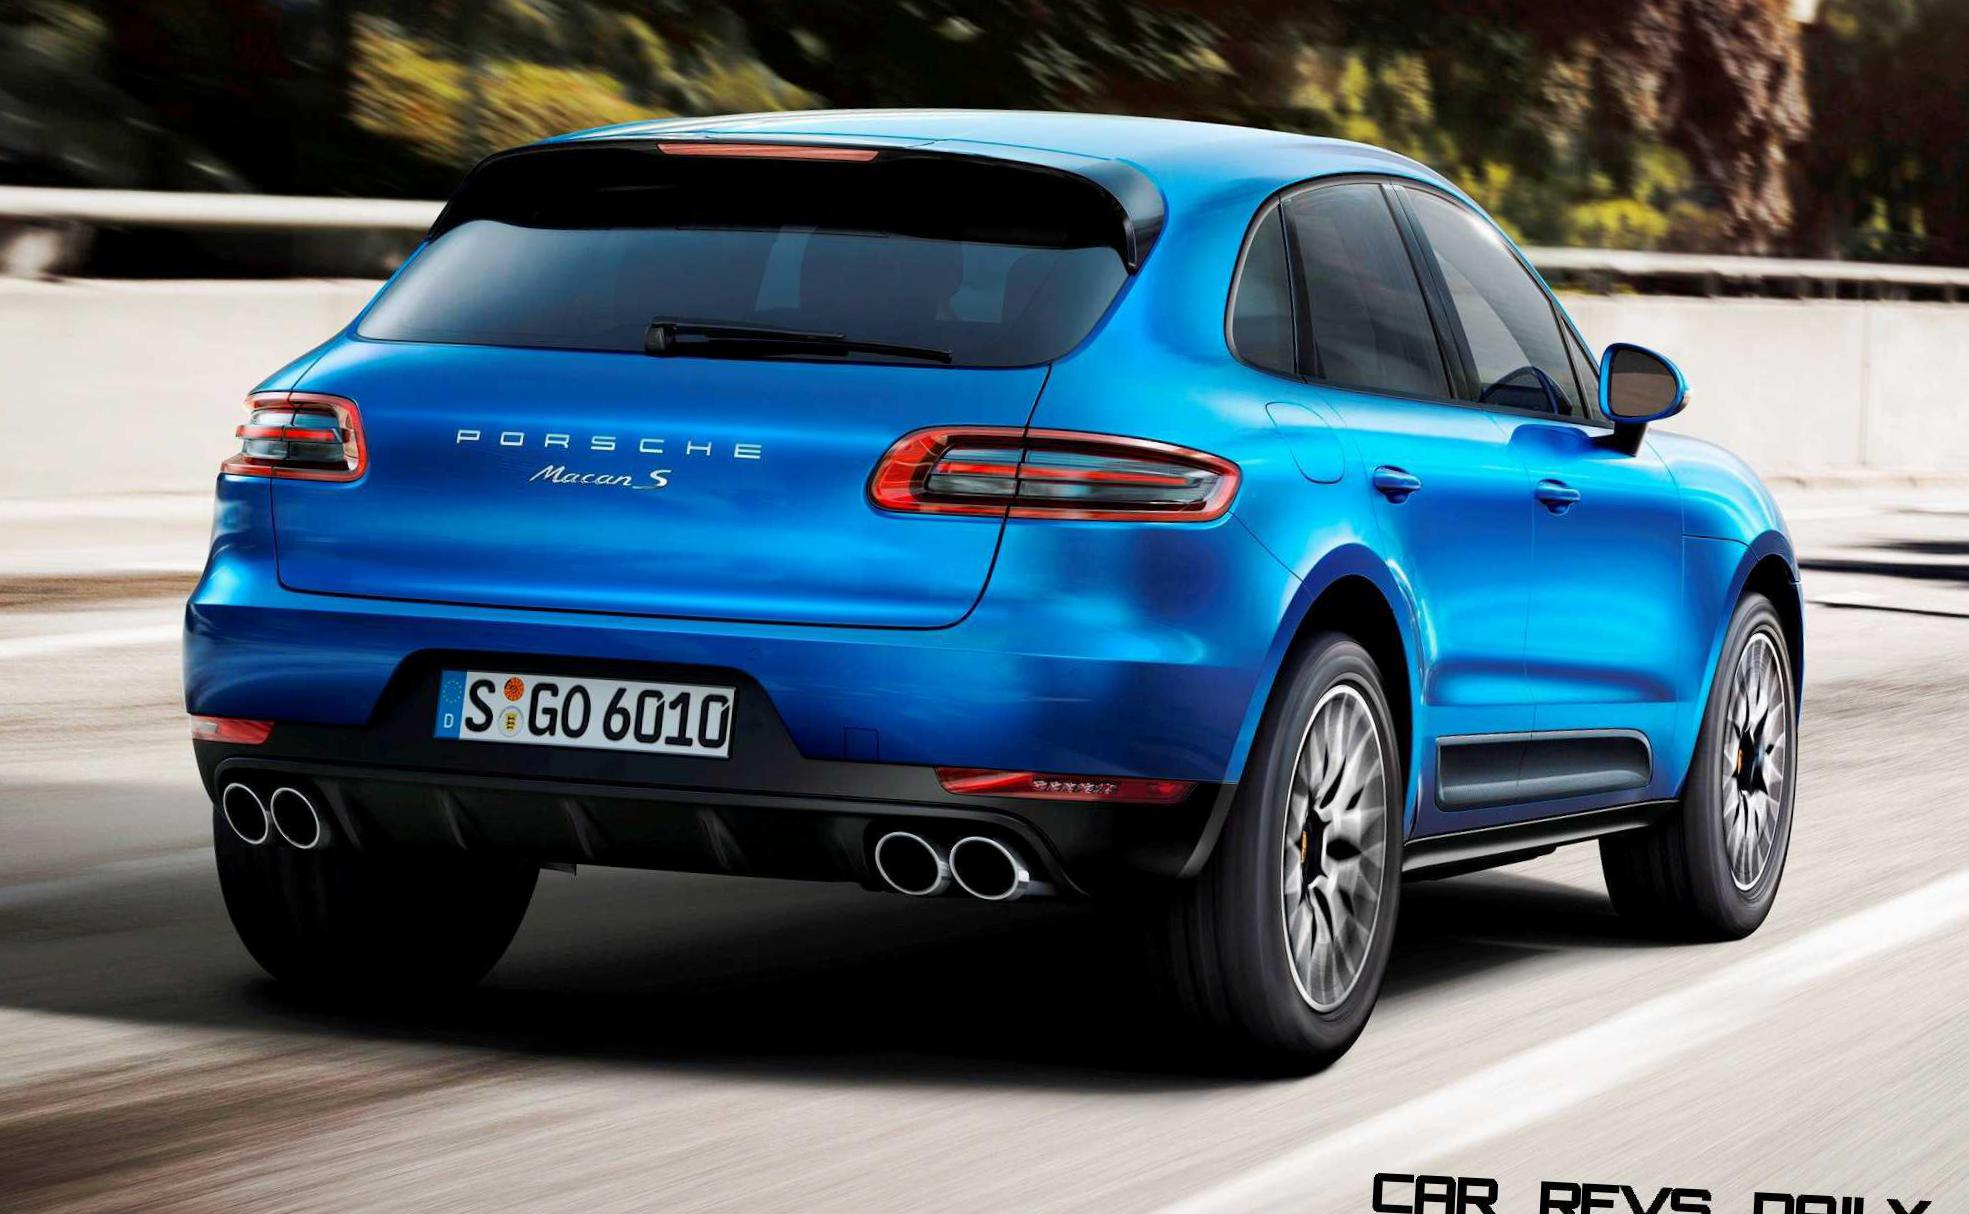 Porsche Macan Turbo Specifications minivan